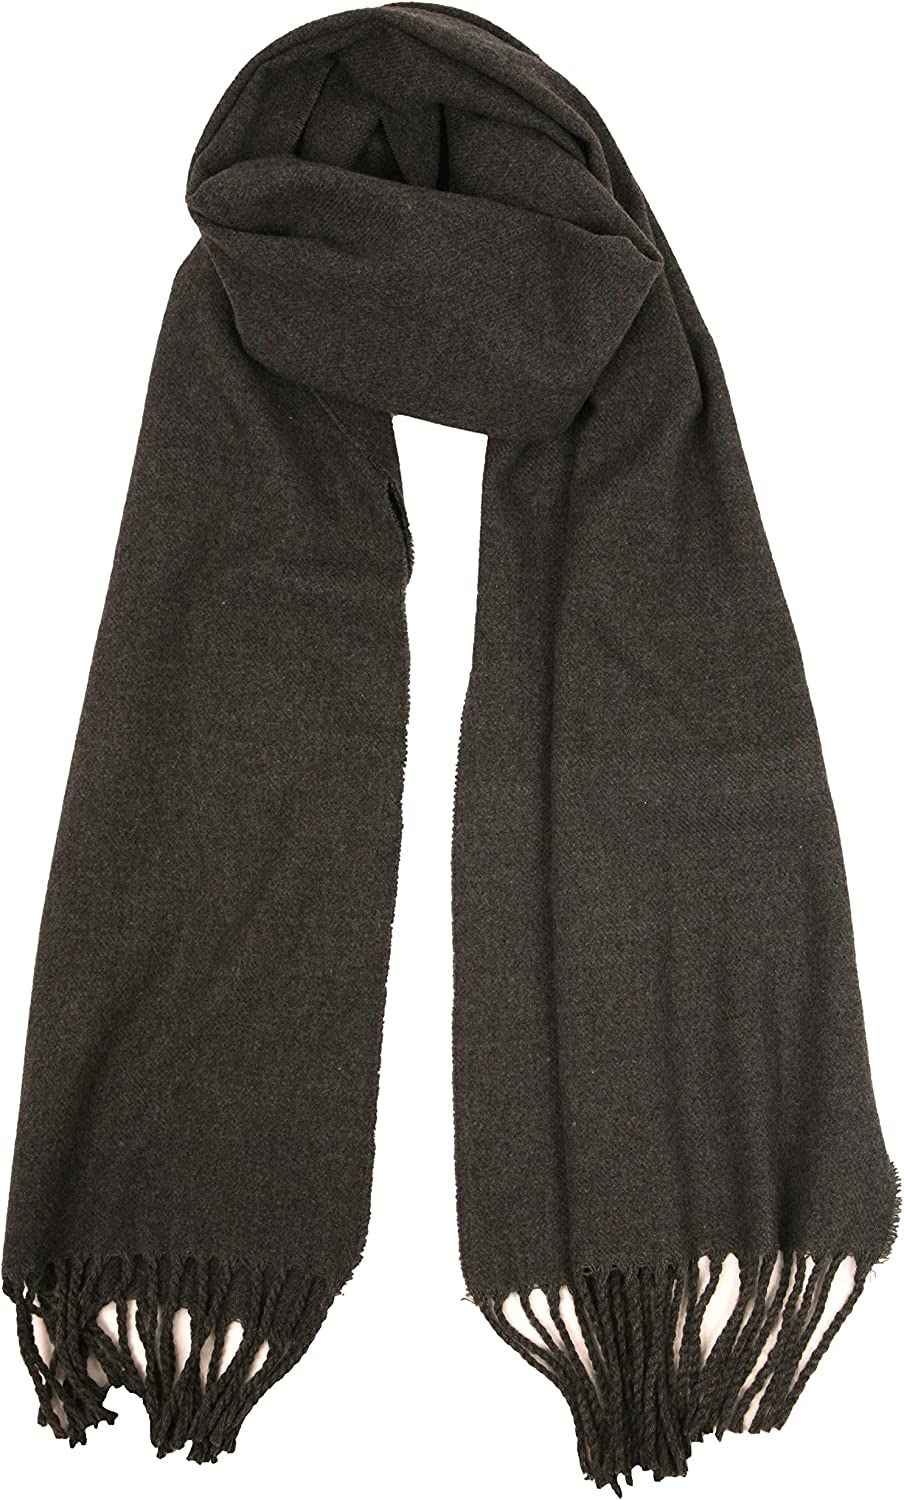 Love Lakeside-Cashmere Feel Winter Solid Color Scarf